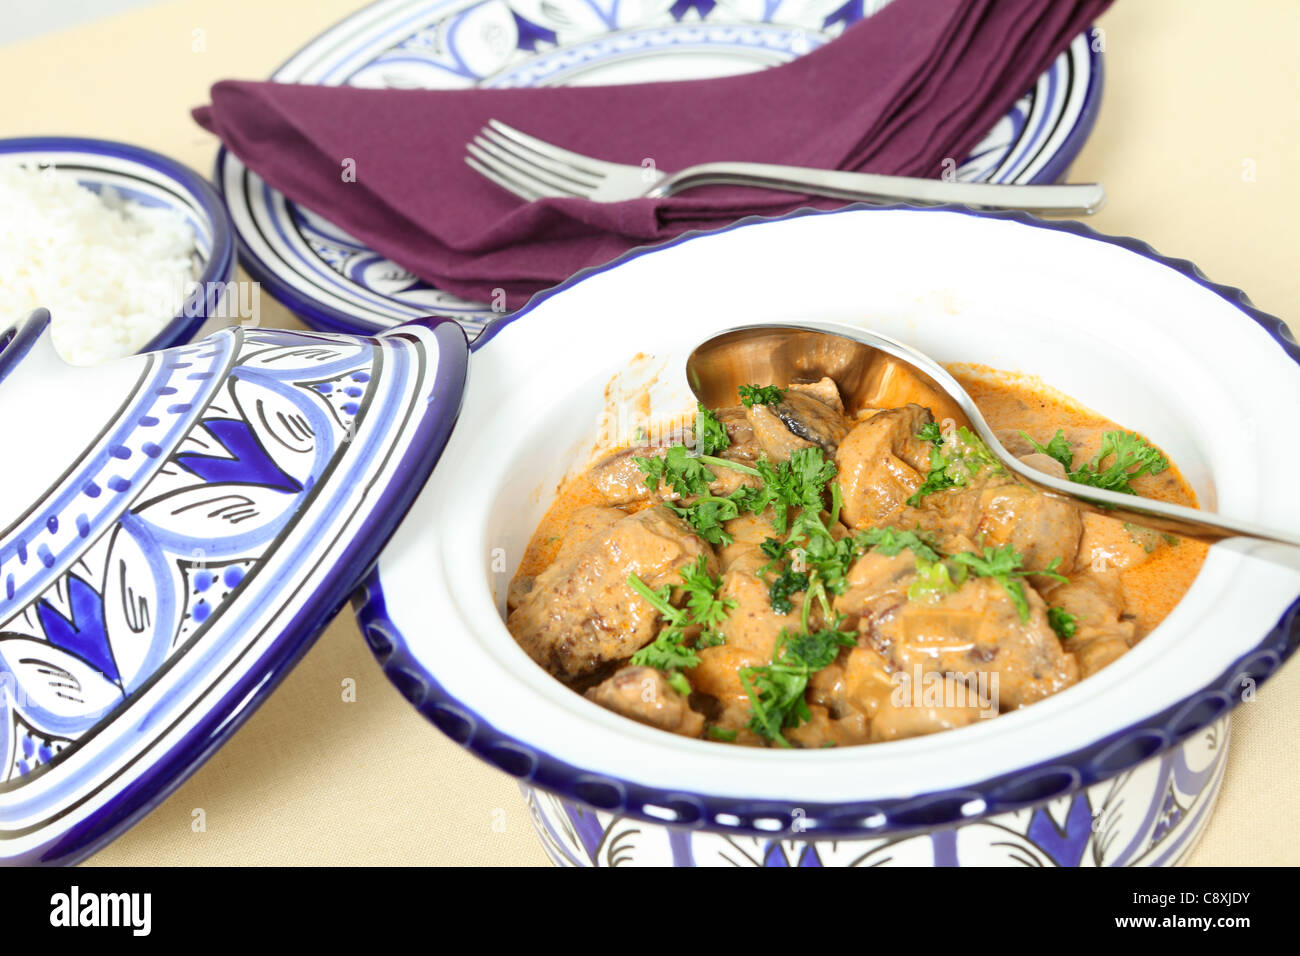 A bowl of beef stroganoff with white rice and a spoon on a table and dinner plates and forks behind, horizontal - Stock Image